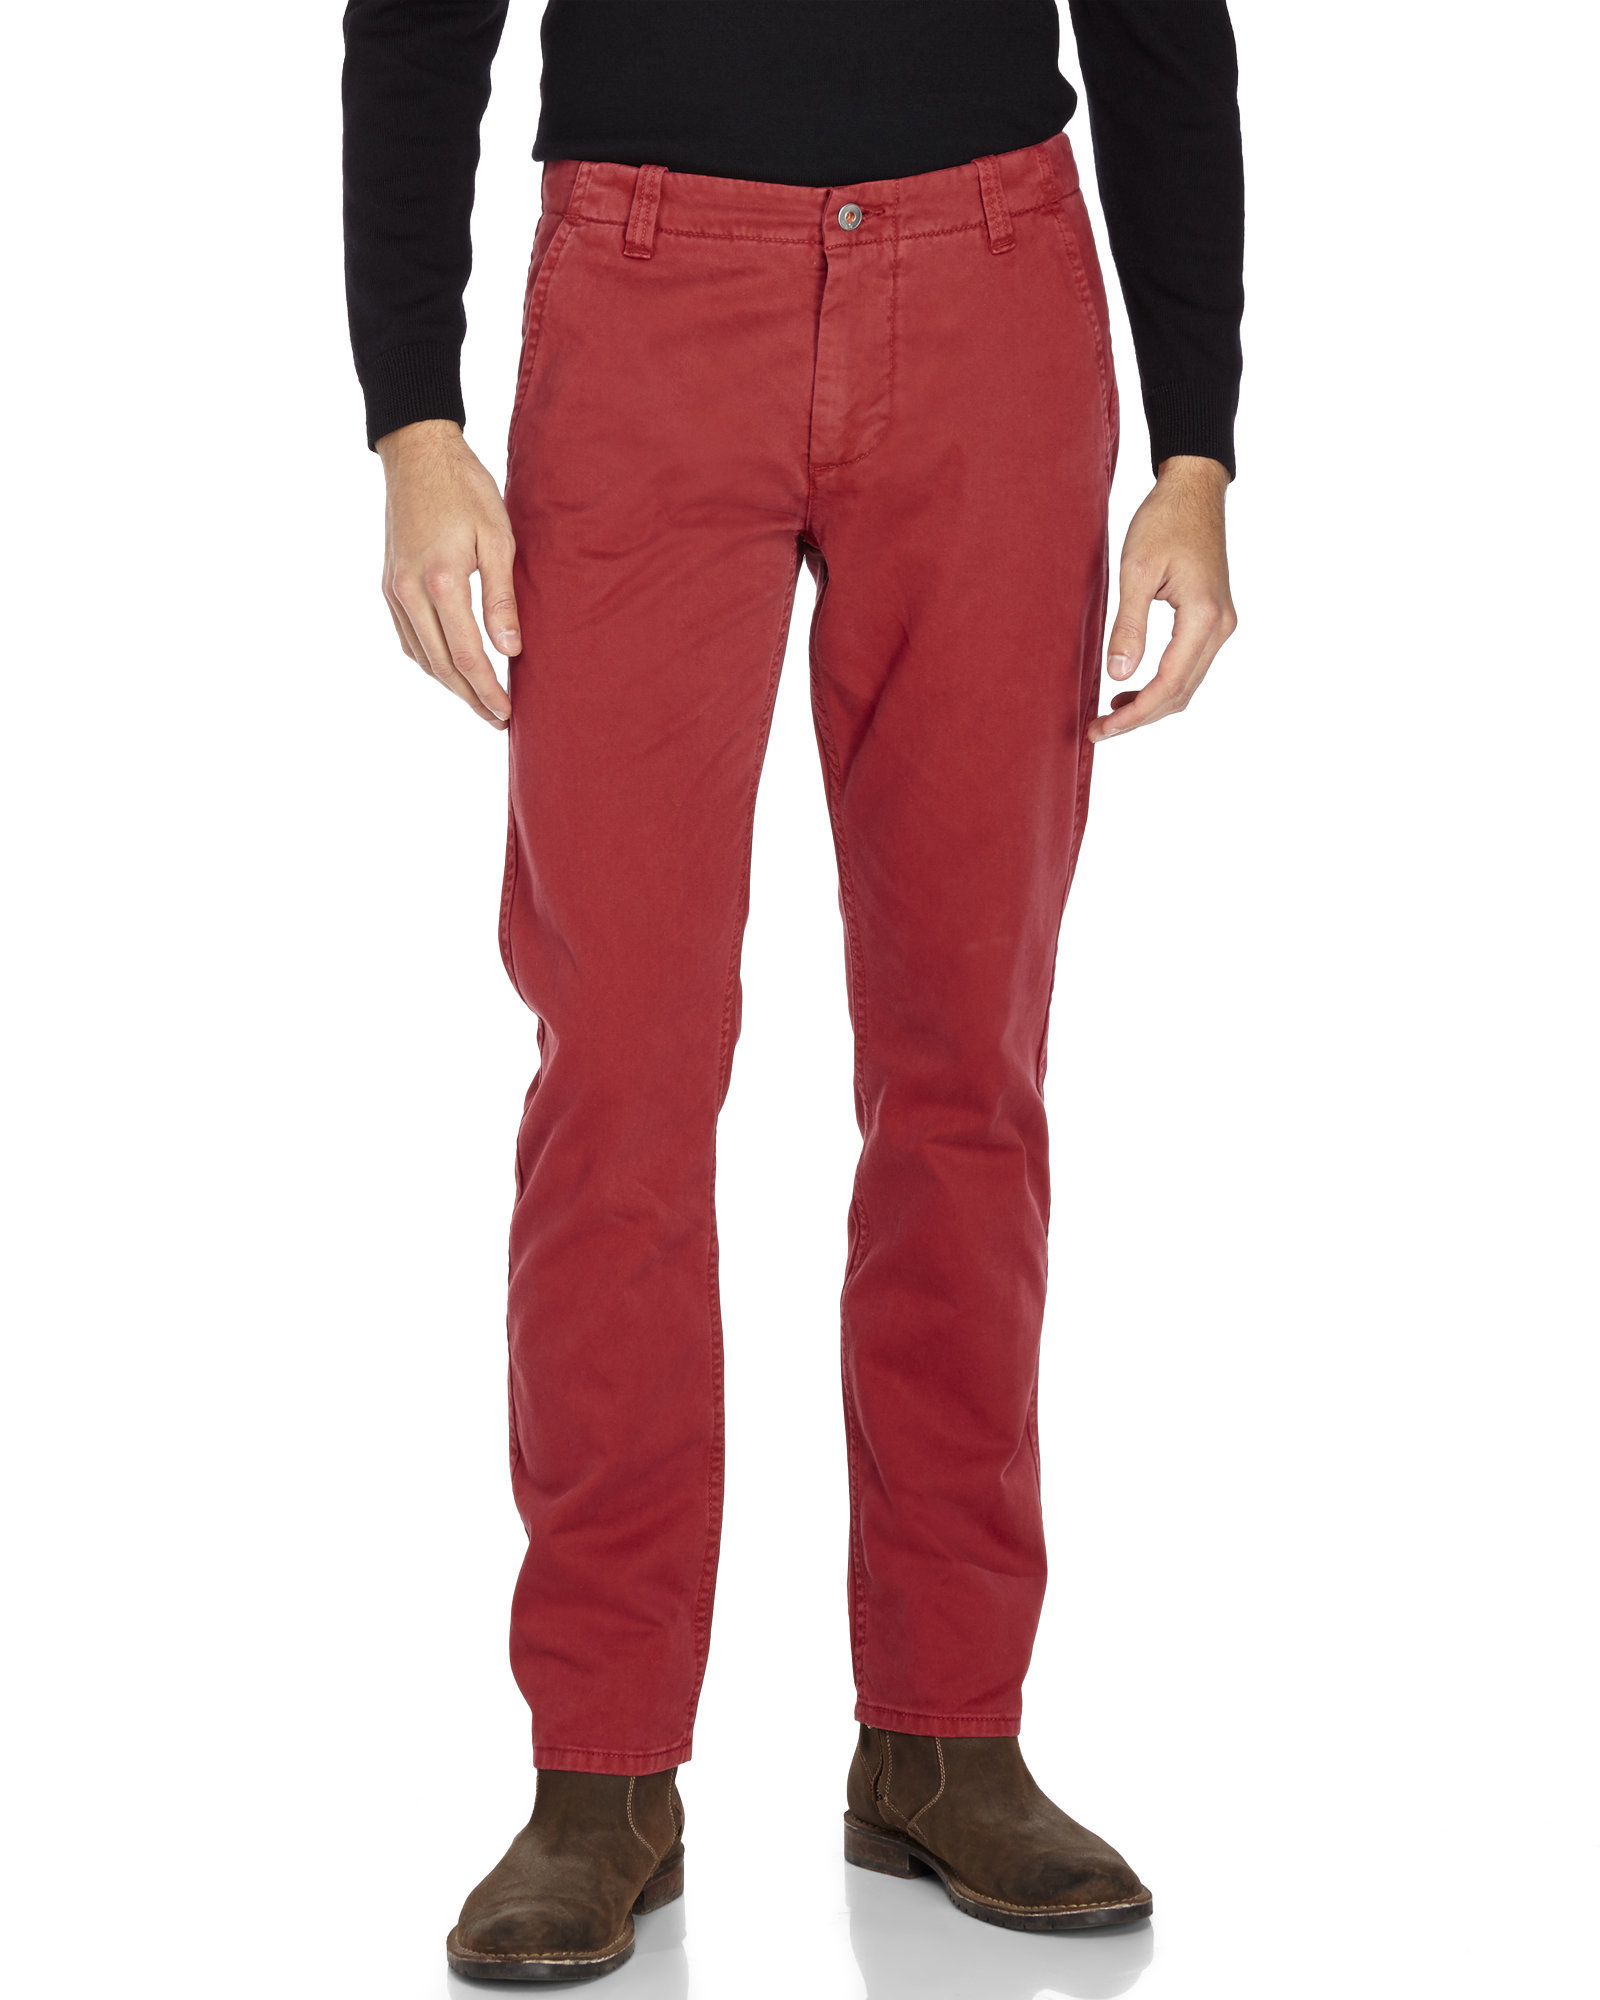 The Red Butte Cargo pant is designed to make rugged comfortable. With 7 utility pockets and UPF 50 sun protection, it's likely you never want to take them off. Features 7 Utility pockets UPF 50 sun protection % Cotton Canvas 8 oz.